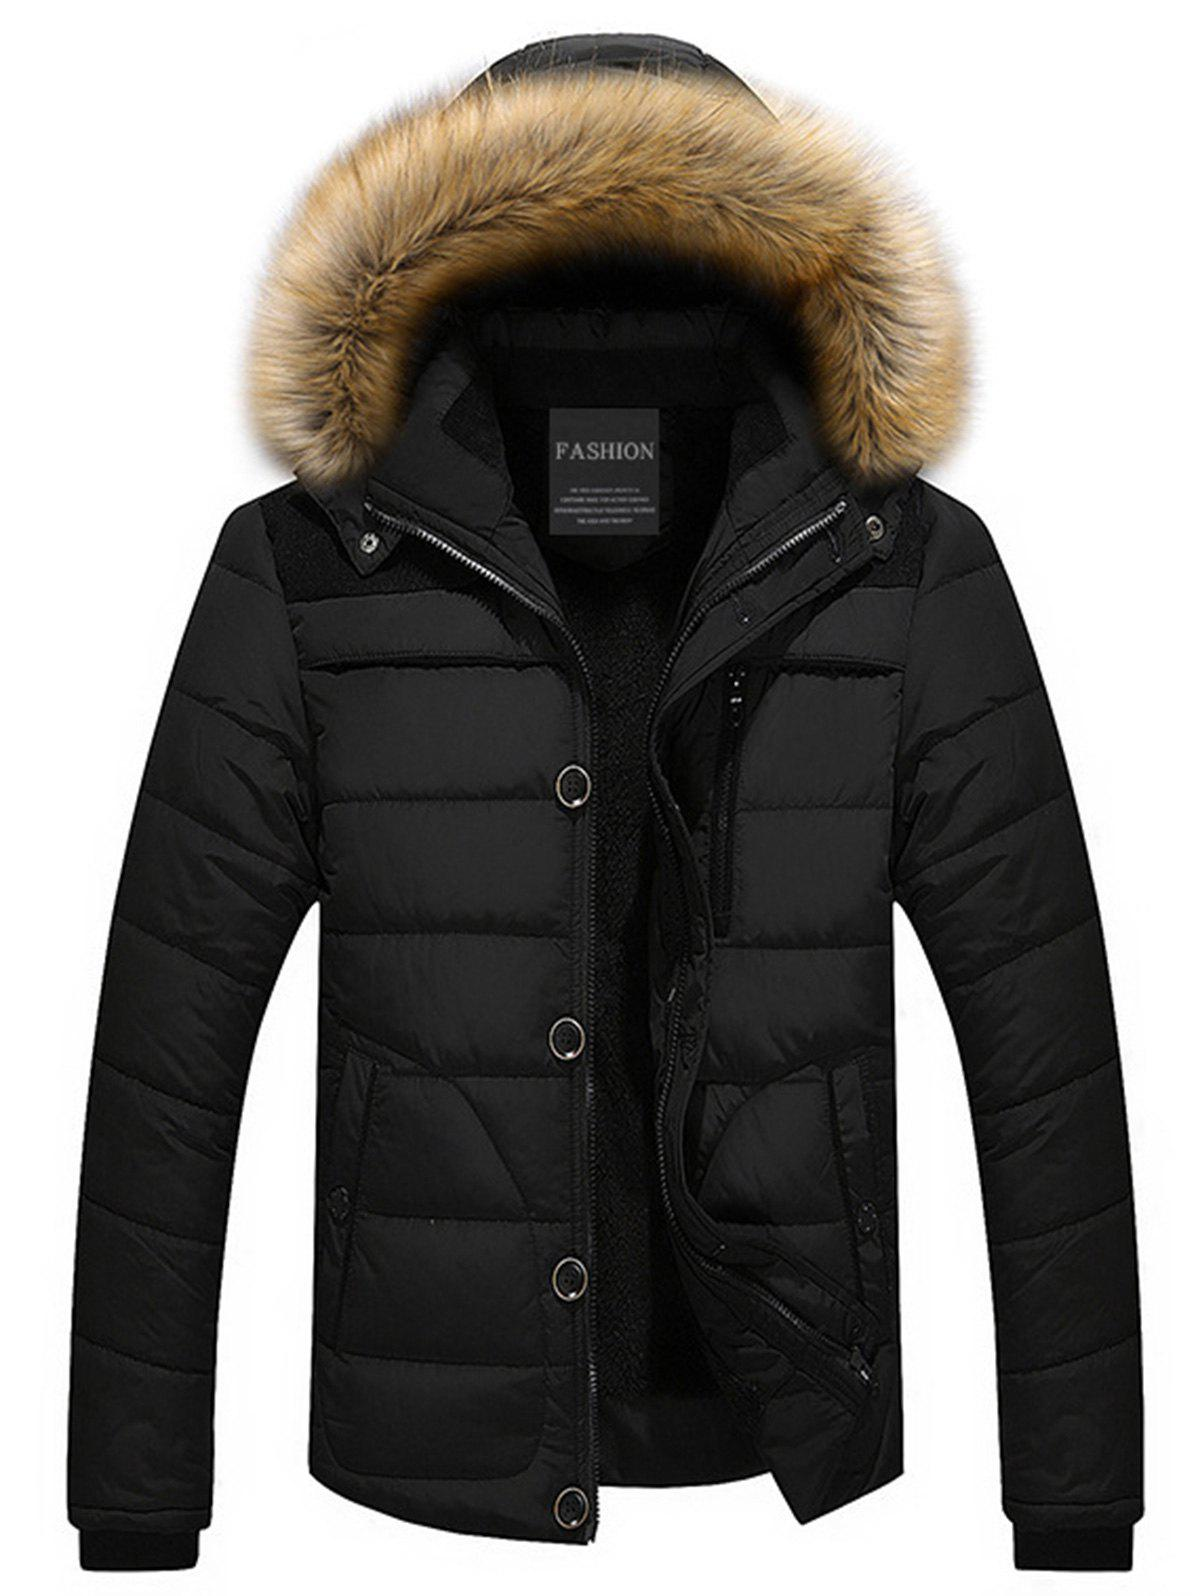 Hooded Puffer Jacket with Faux Fur TrimMEN<br><br>Size: L; Color: BLACK; Clothes Type: Jackets; Style: Fashion; Material: Cotton,Polyester; Collar: Hooded; Shirt Length: Regular; Sleeve Length: Long Sleeves; Season: Fall,Winter; Closure Type: Zipper; Occasion: Casual,Daily Use,Going Out; Weight: 1.1200kg; Package Contents: 1 x Jacket;